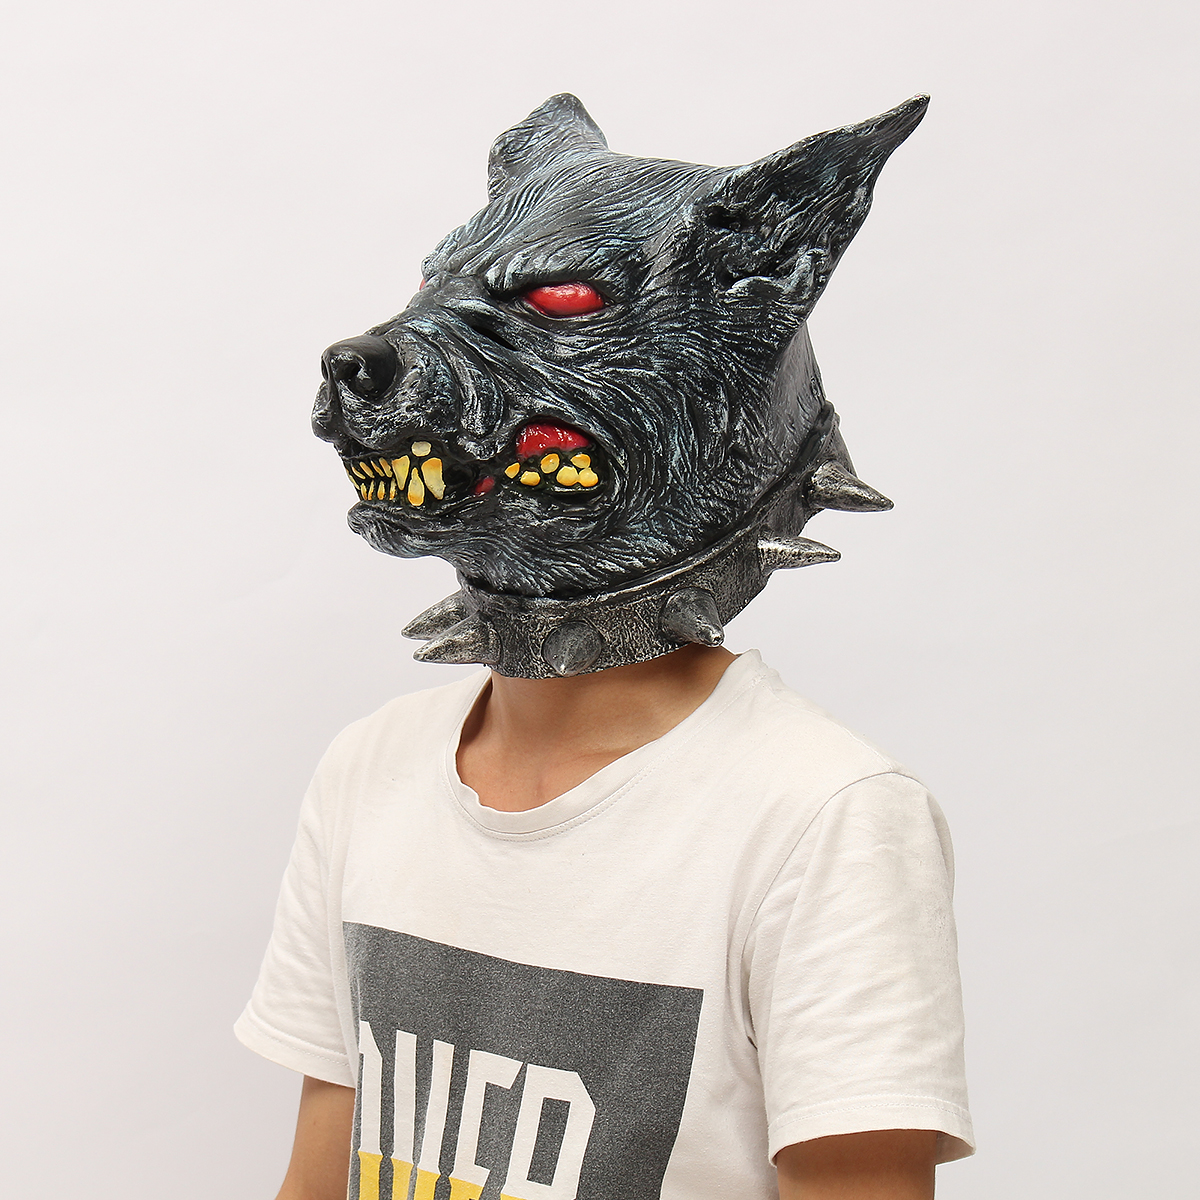 Wolfhound Head Mask Creepy Animal Halloween Costume Theater Prop Latex Party Toy